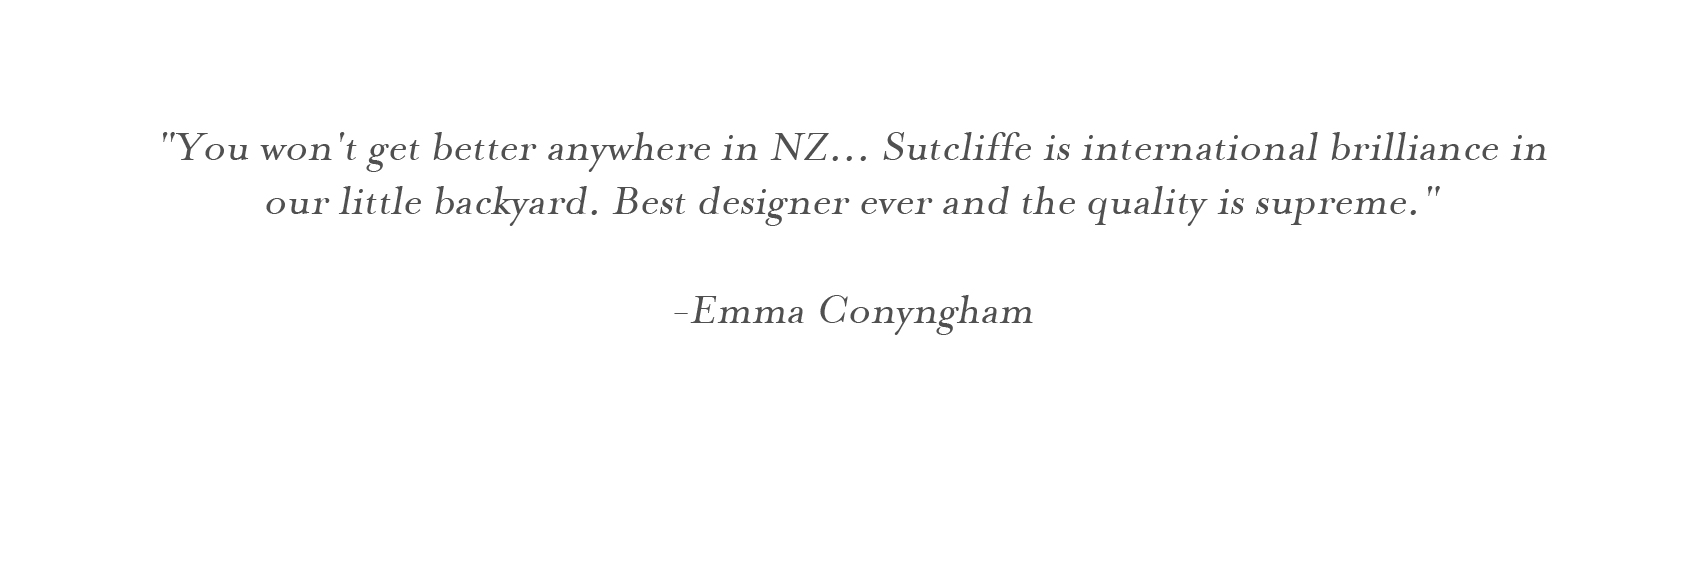 """You won't get better anywhere in NZ... Sutcliffe is international brilliance in our little backyard. Best designer ever and the quality is supreme.""  -Emma Conyngham"